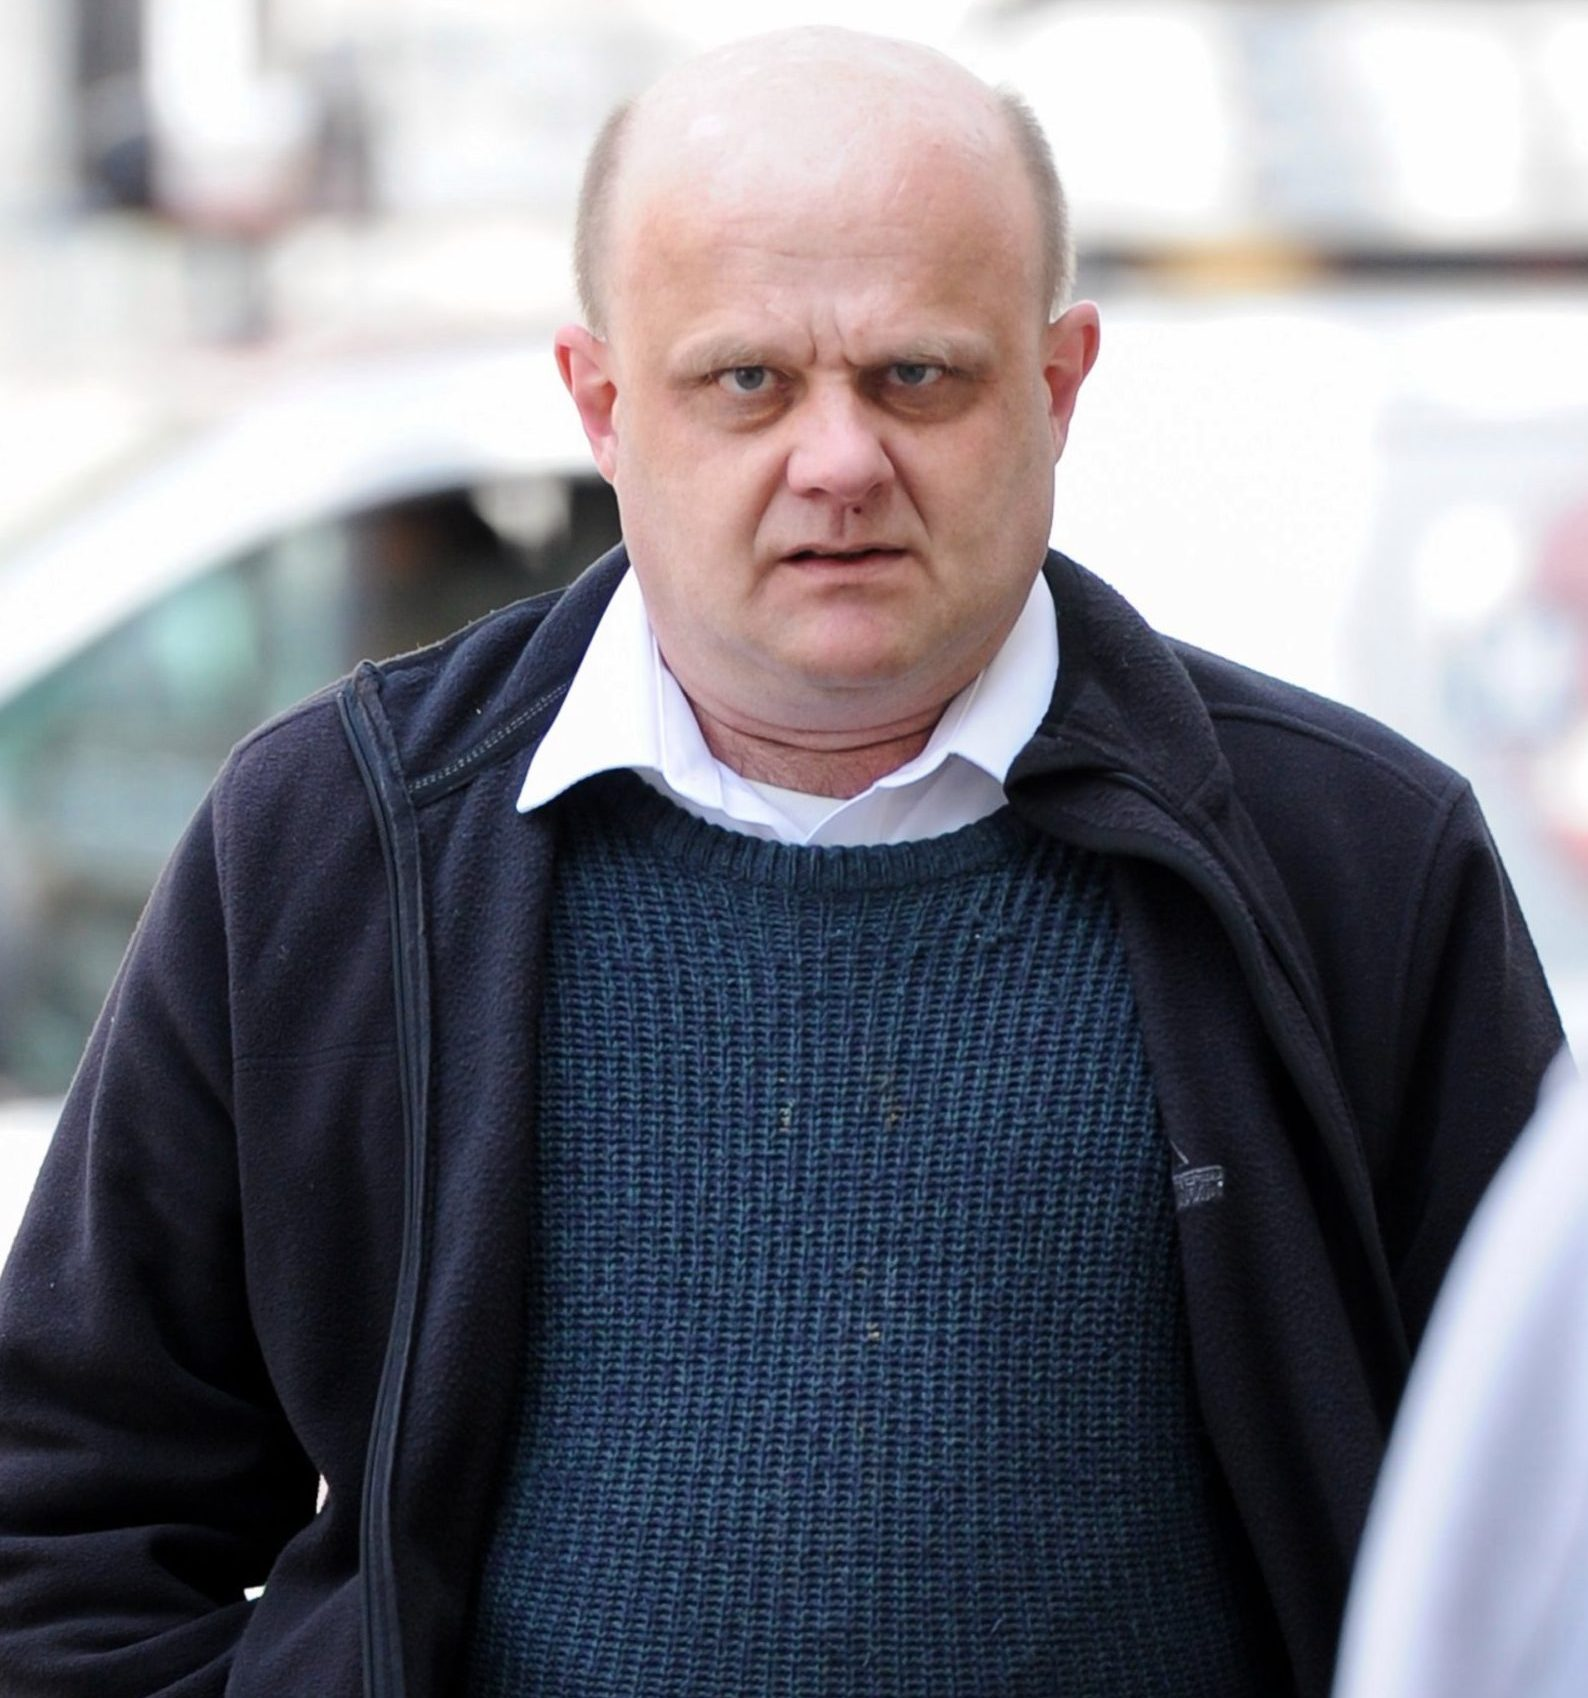 Troll who sent racist abuse and death threats to seven 'Brexit traitor' MPs is jailed